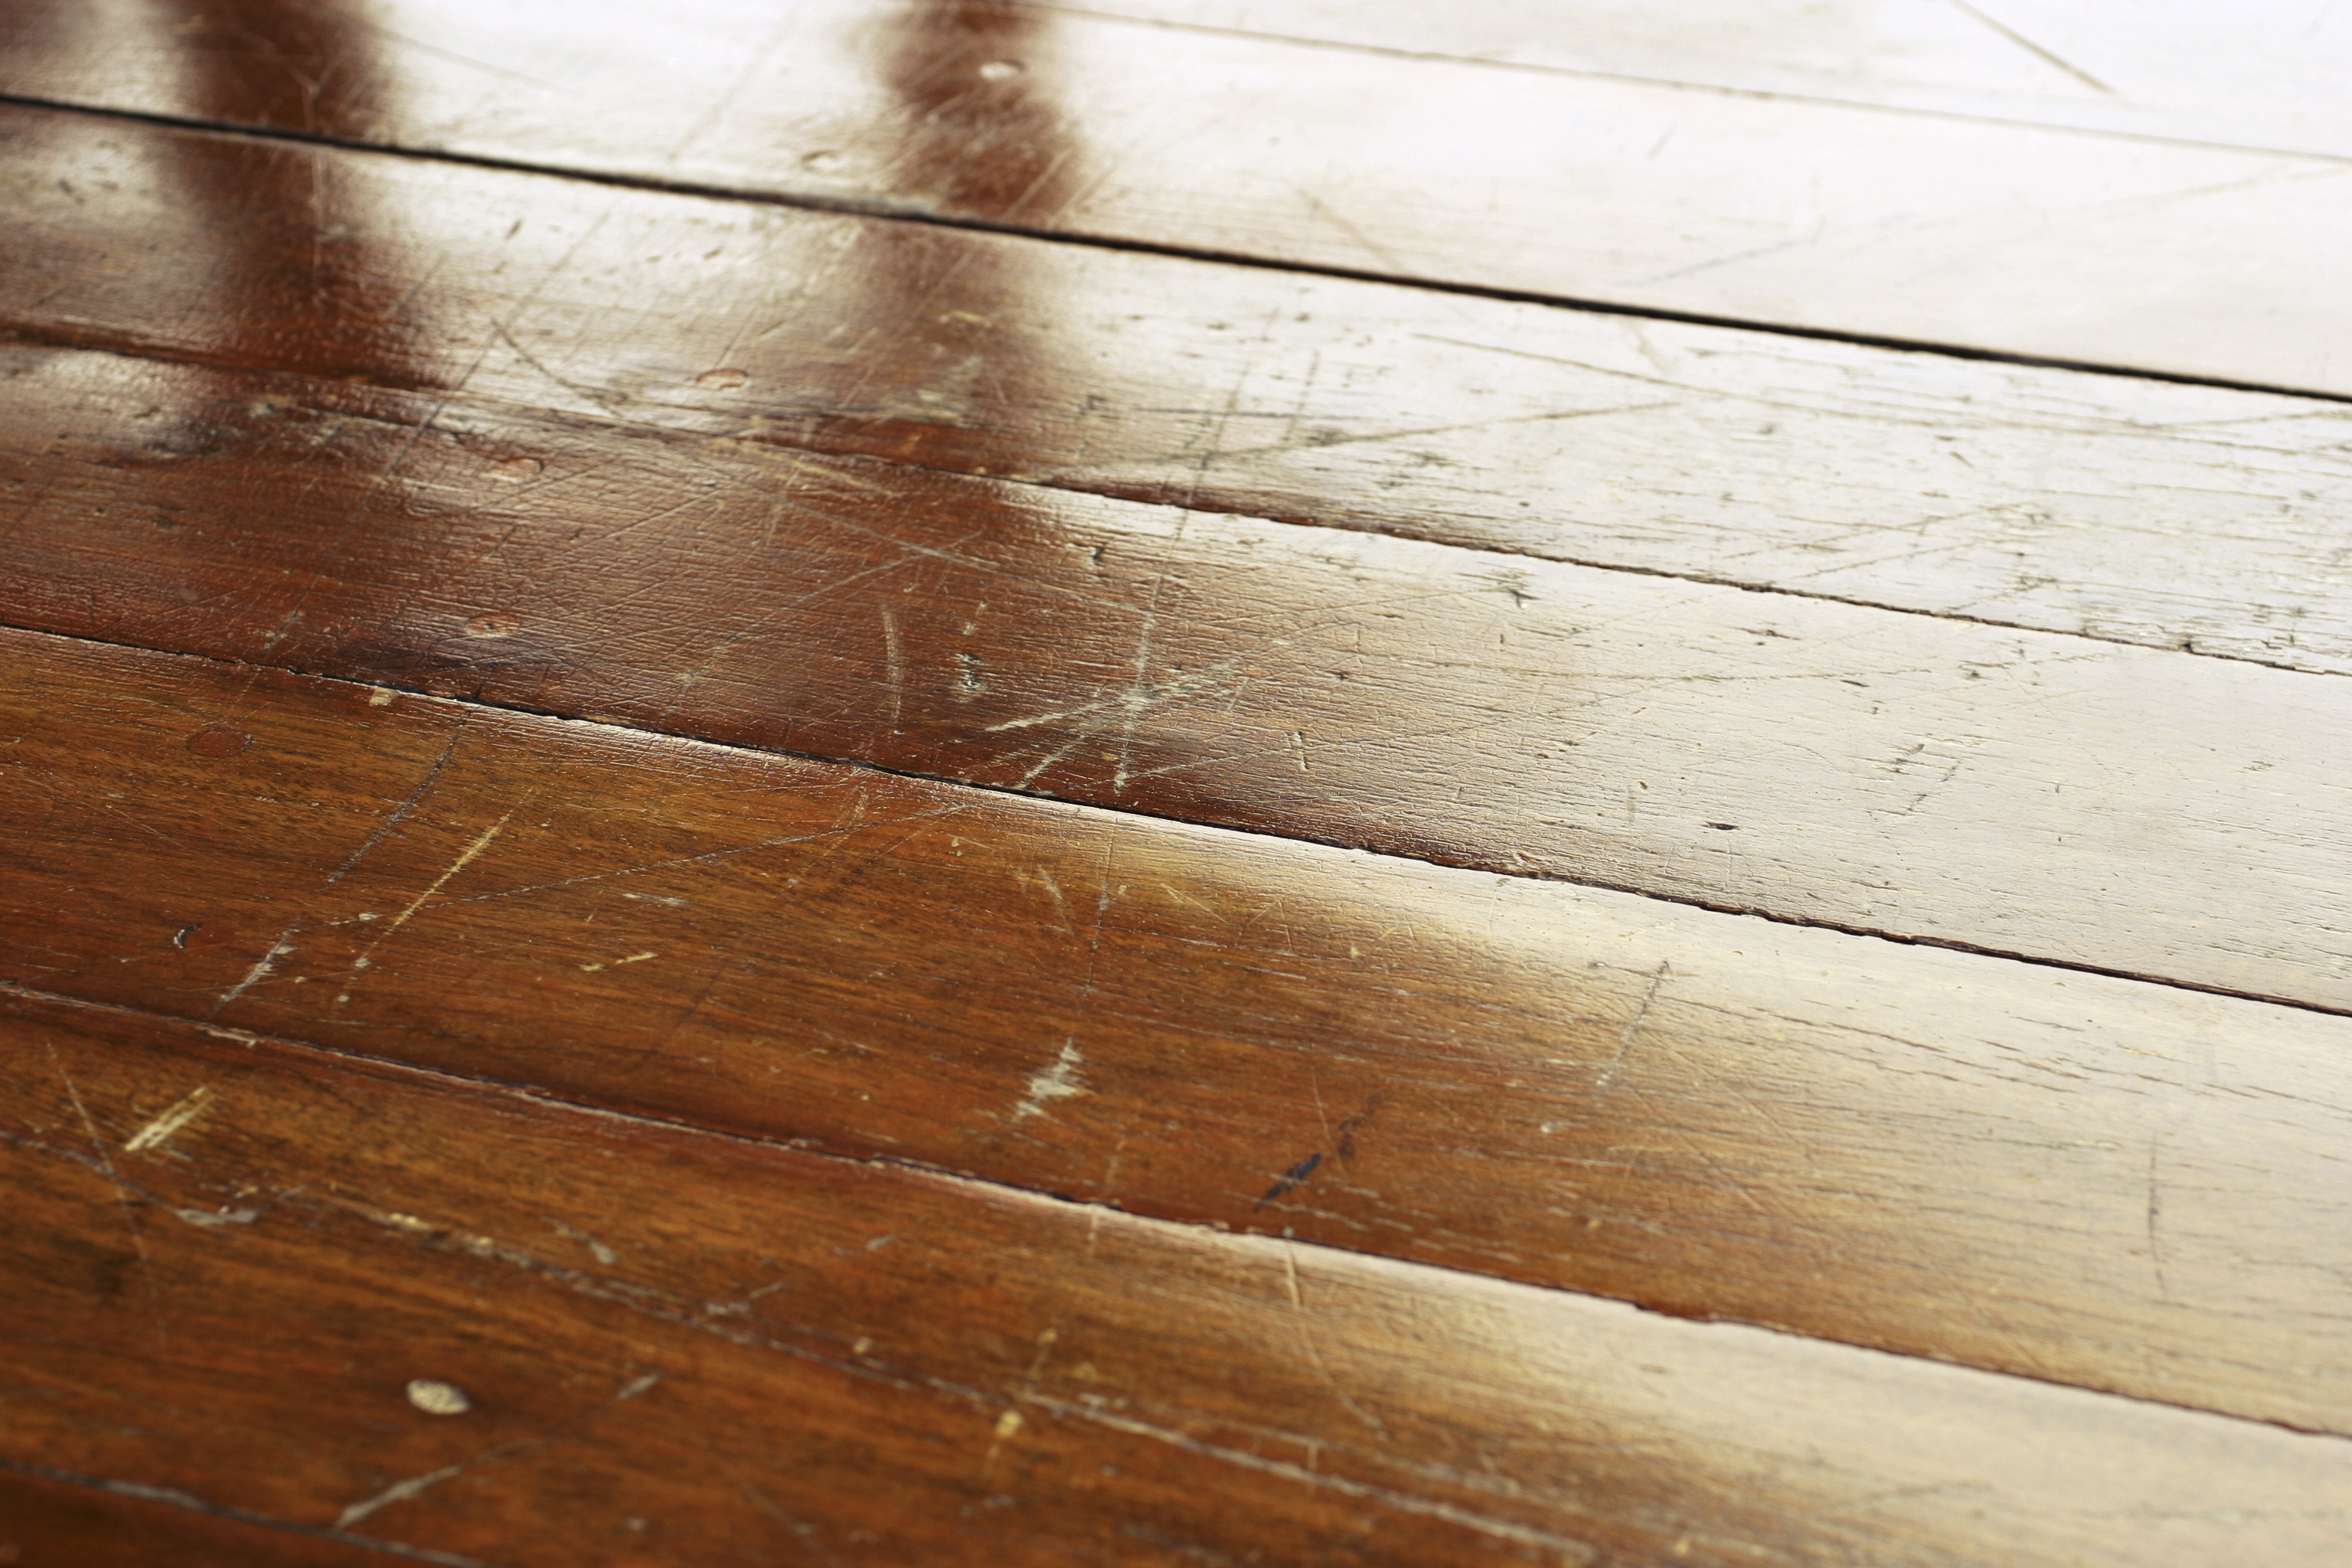 9 Things Youre Doing To Ruin Your Hardwood Floors Without Even